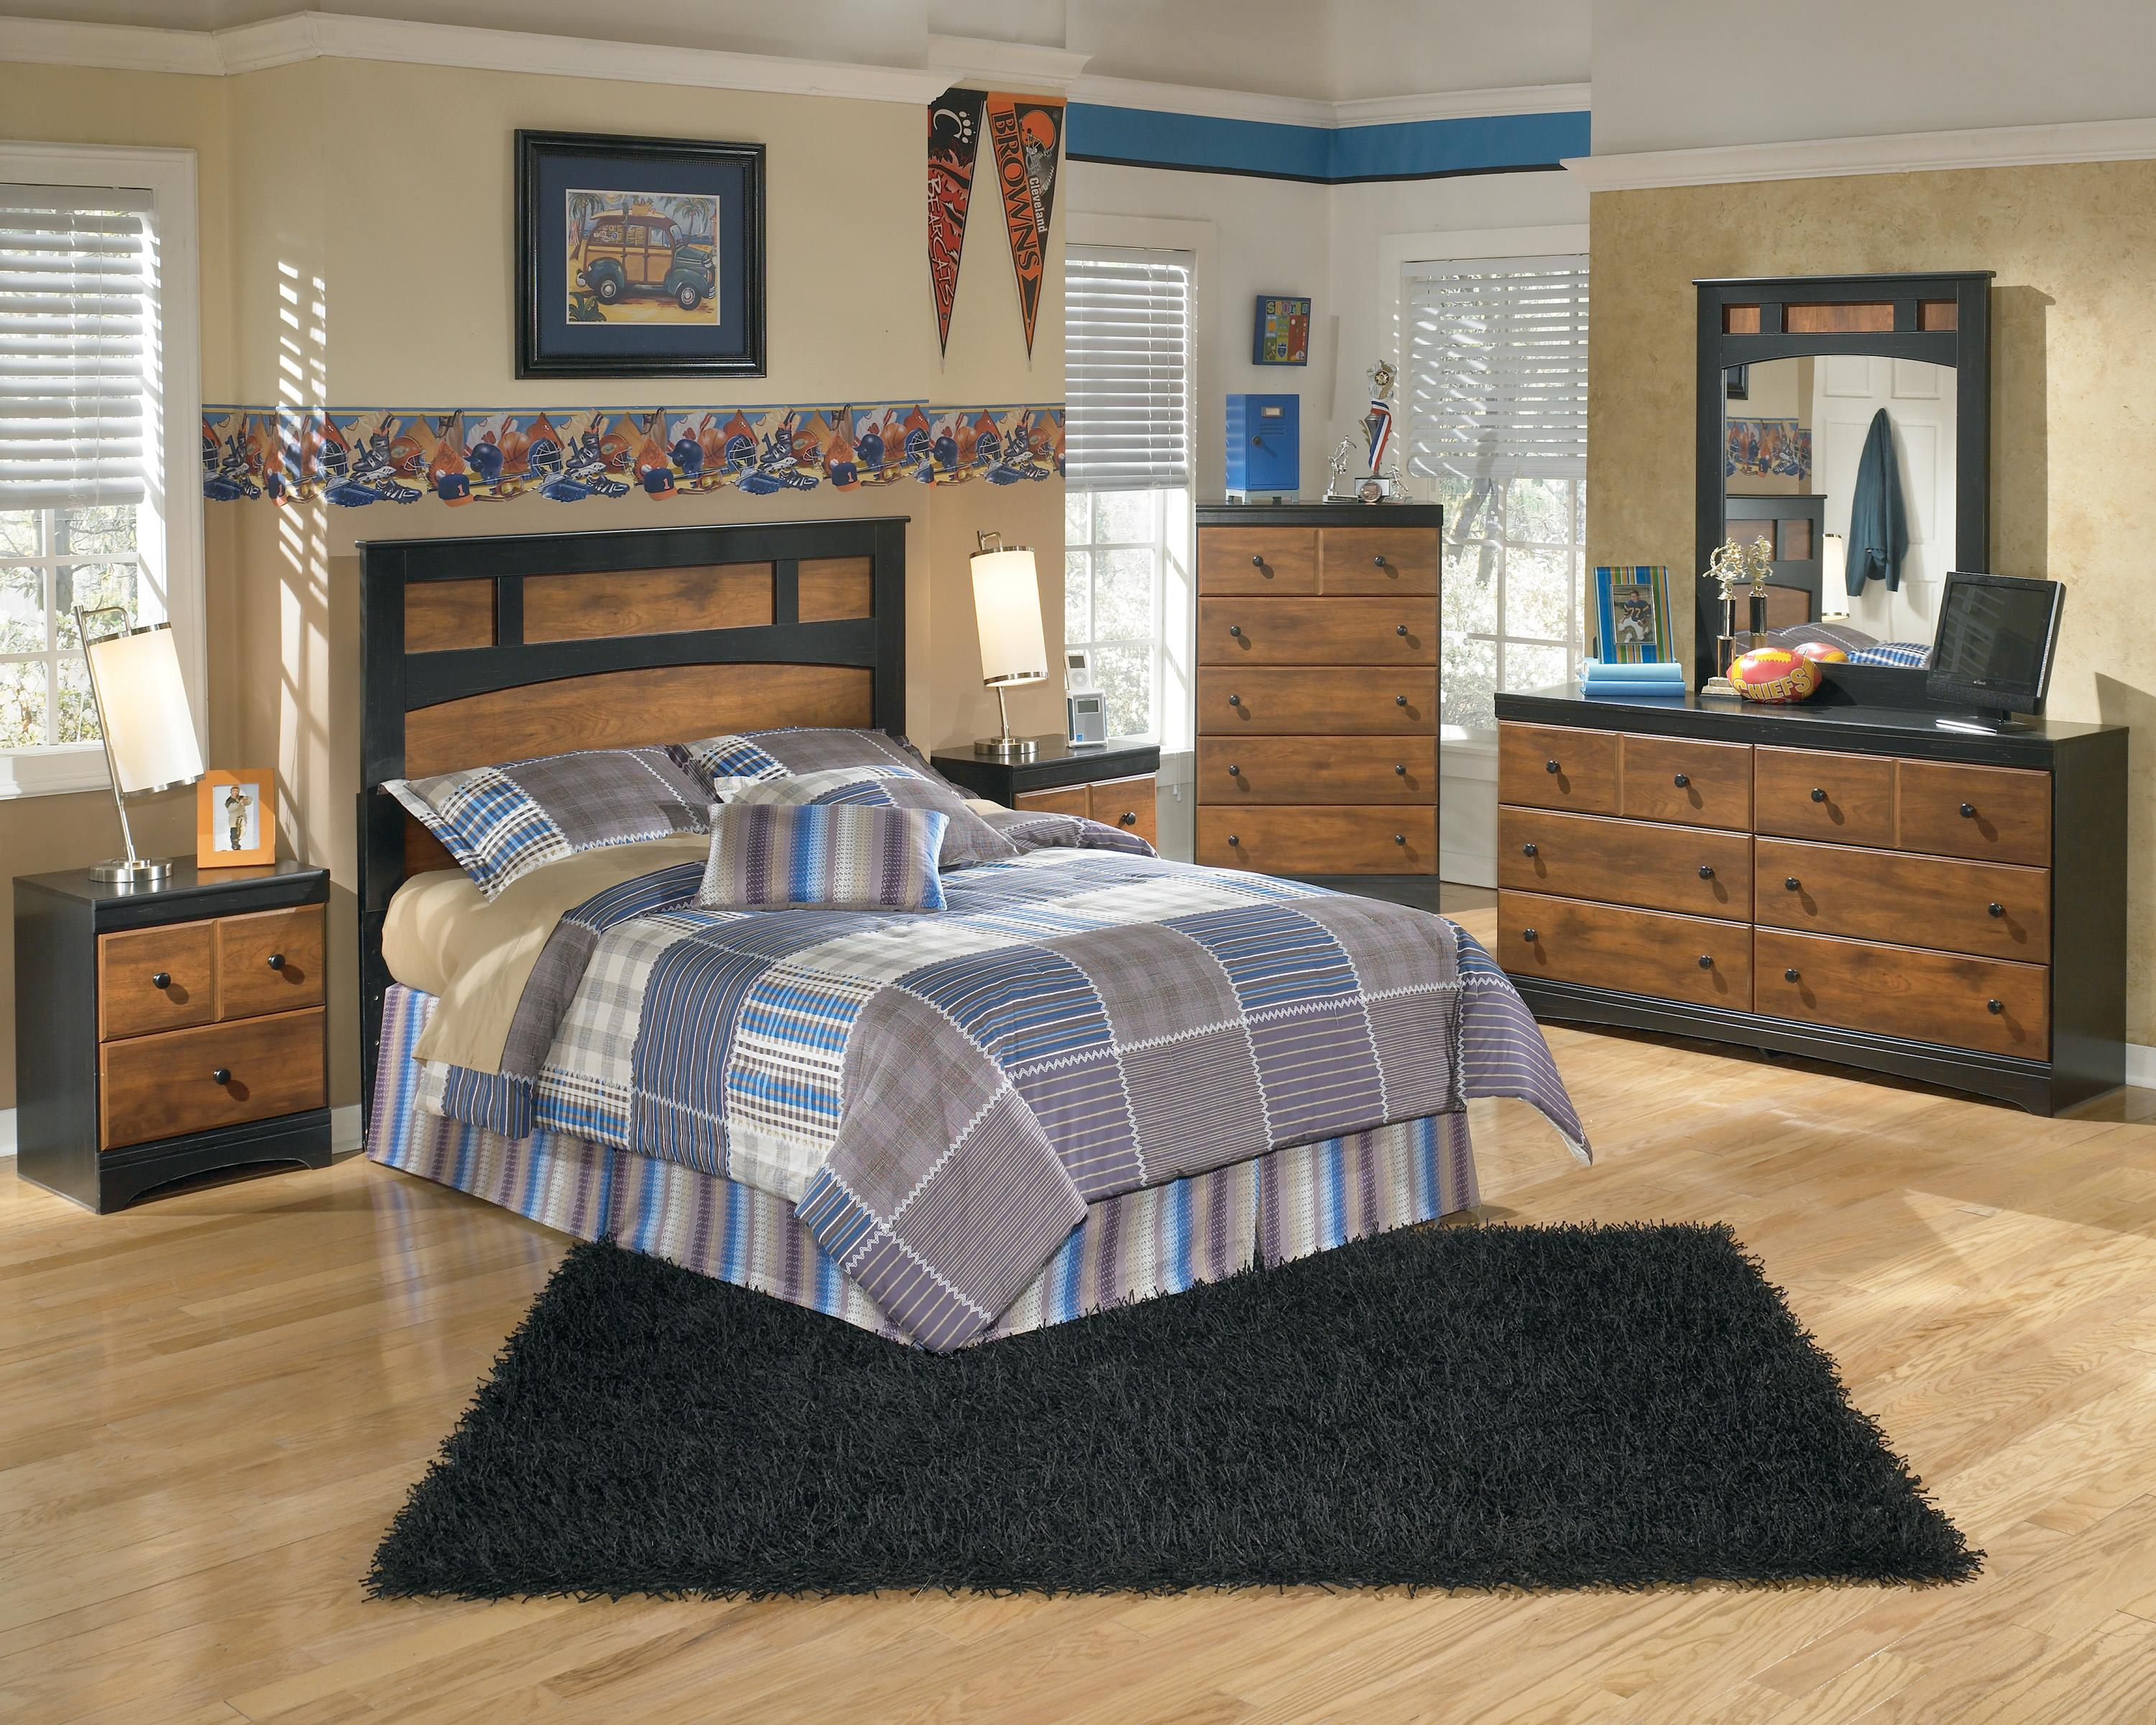 Signature Design by Ashley Aimwell Full Bedroom Group - Item Number: B136 F Bedroom Group 1